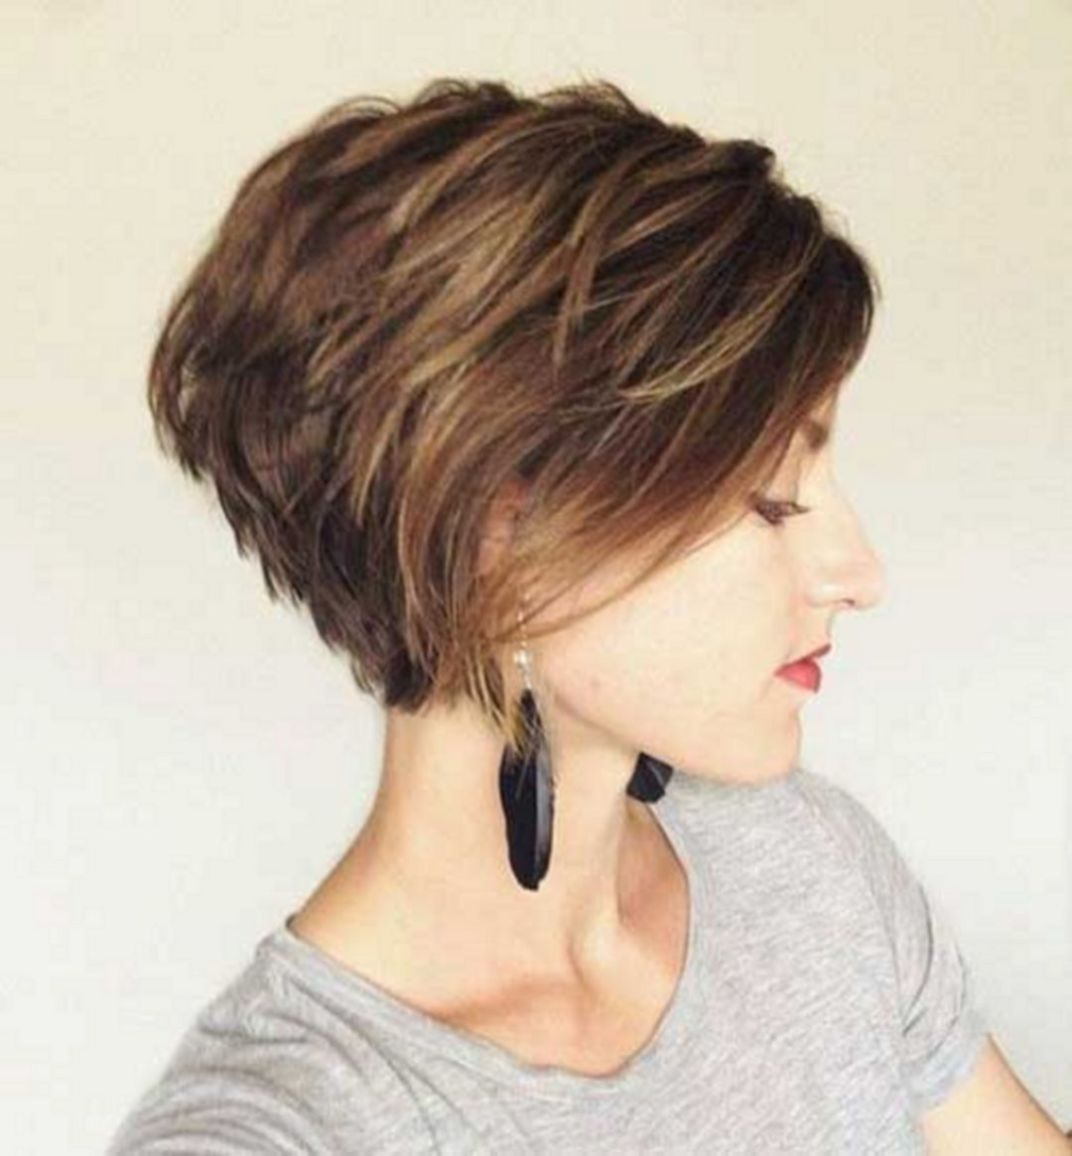 Awesome short hair cuts for beautiful women hairstyles